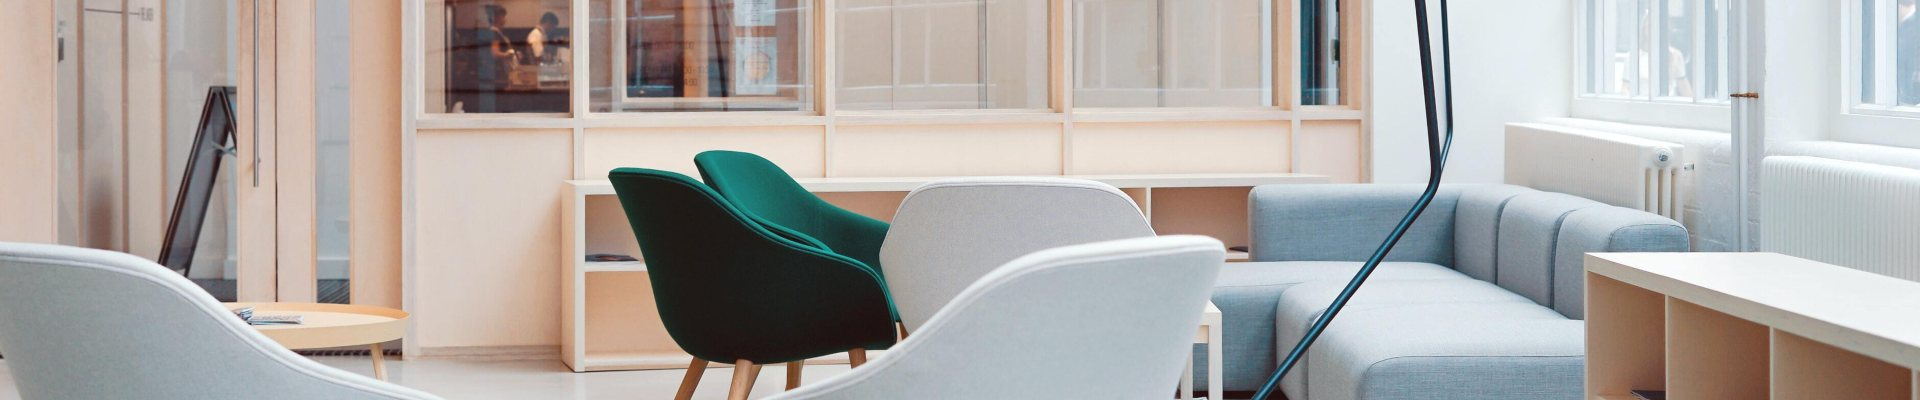 Coworking space with green and gray chairs